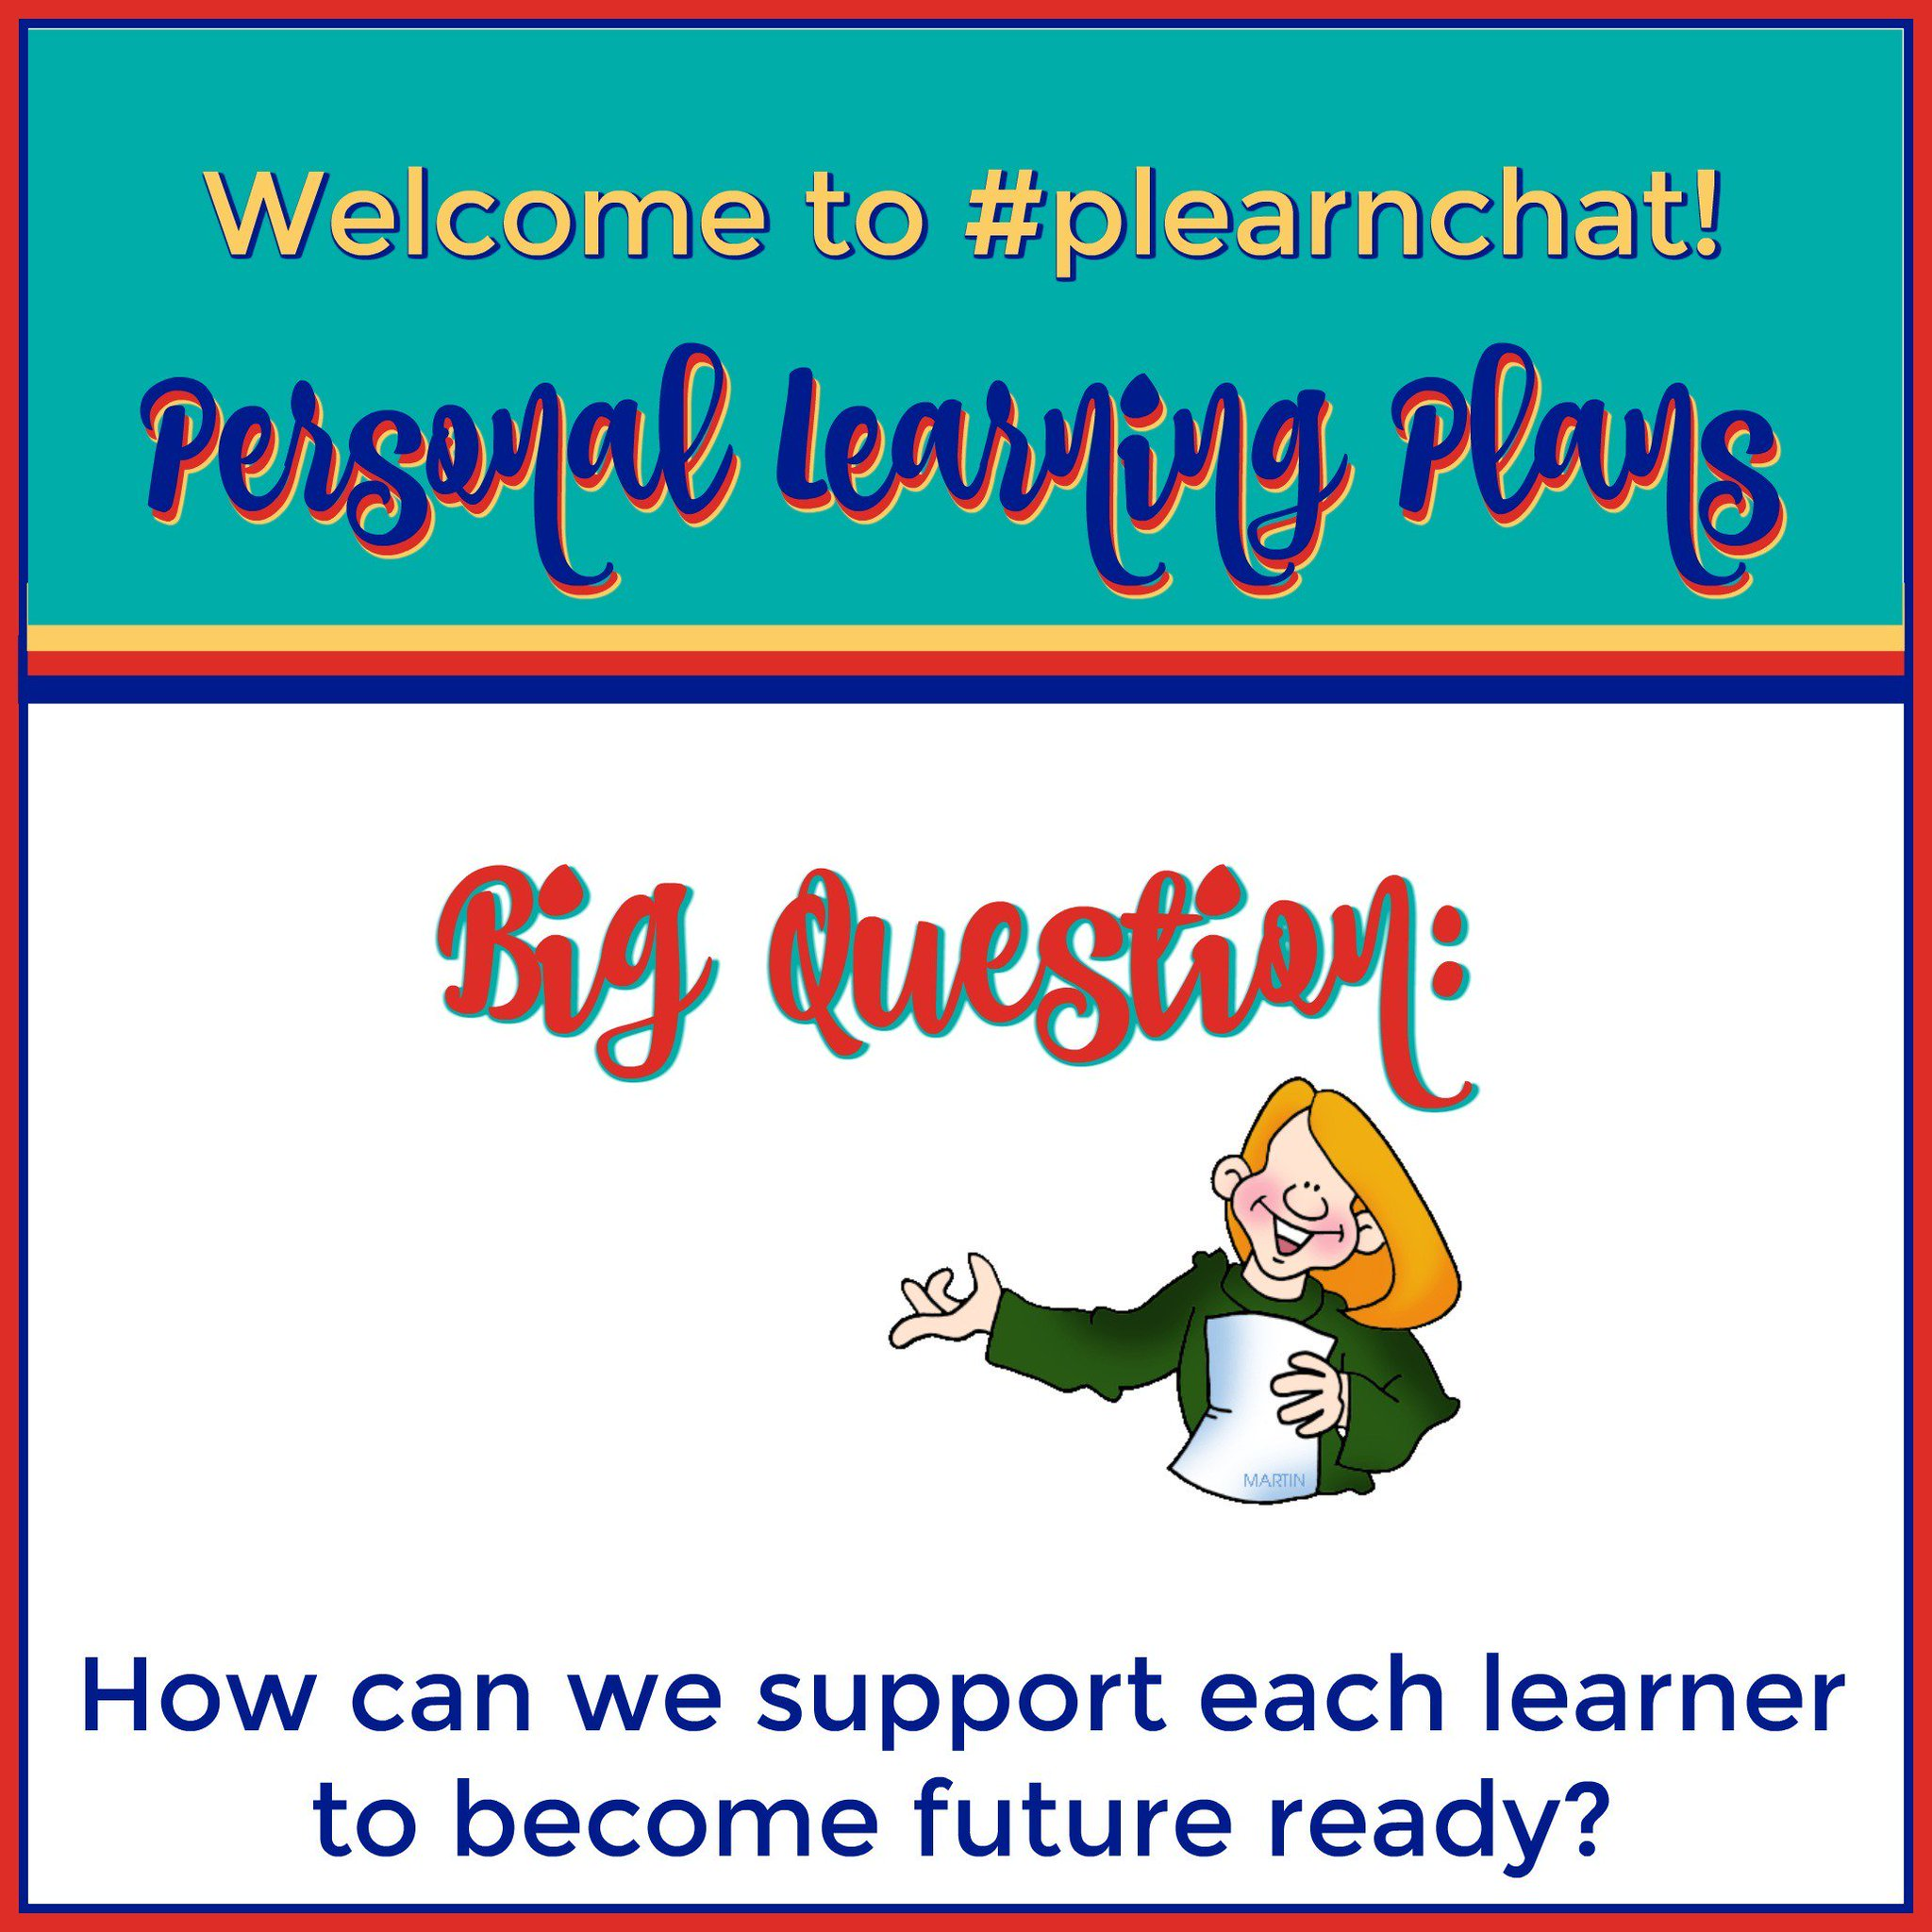 personalize learning 2016 please introduce yourself and where you are from to everyone